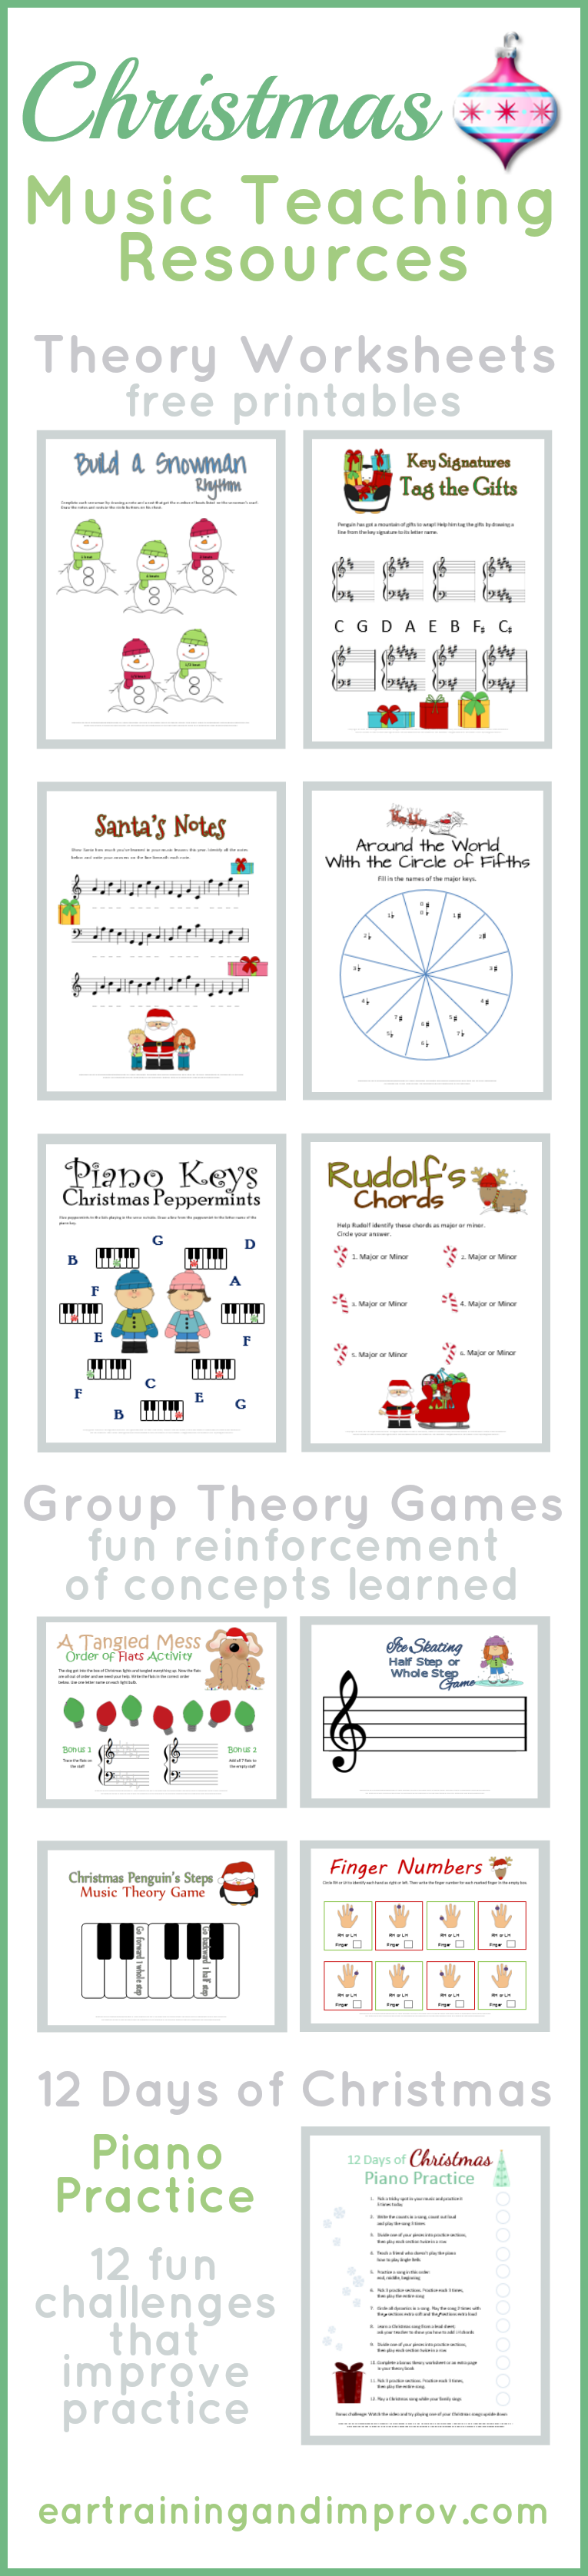 photo regarding Christmas Song Scramble Free Printable named Xmas New music Basic principle Worksheets - 20+ No cost Printables